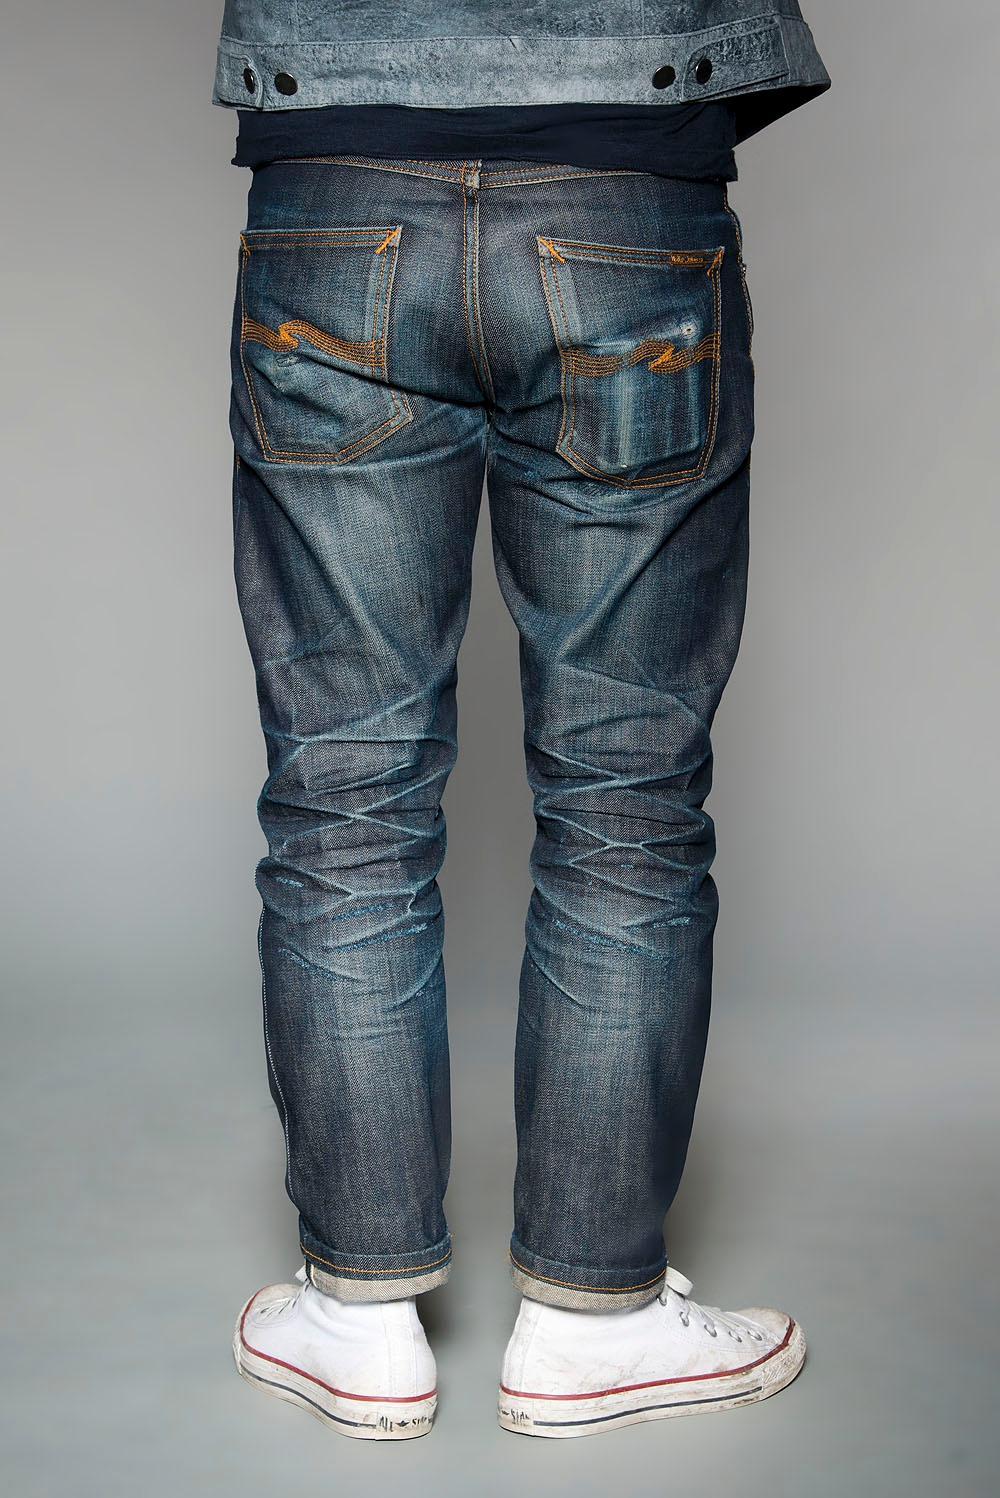 Stretch Jeans Mens